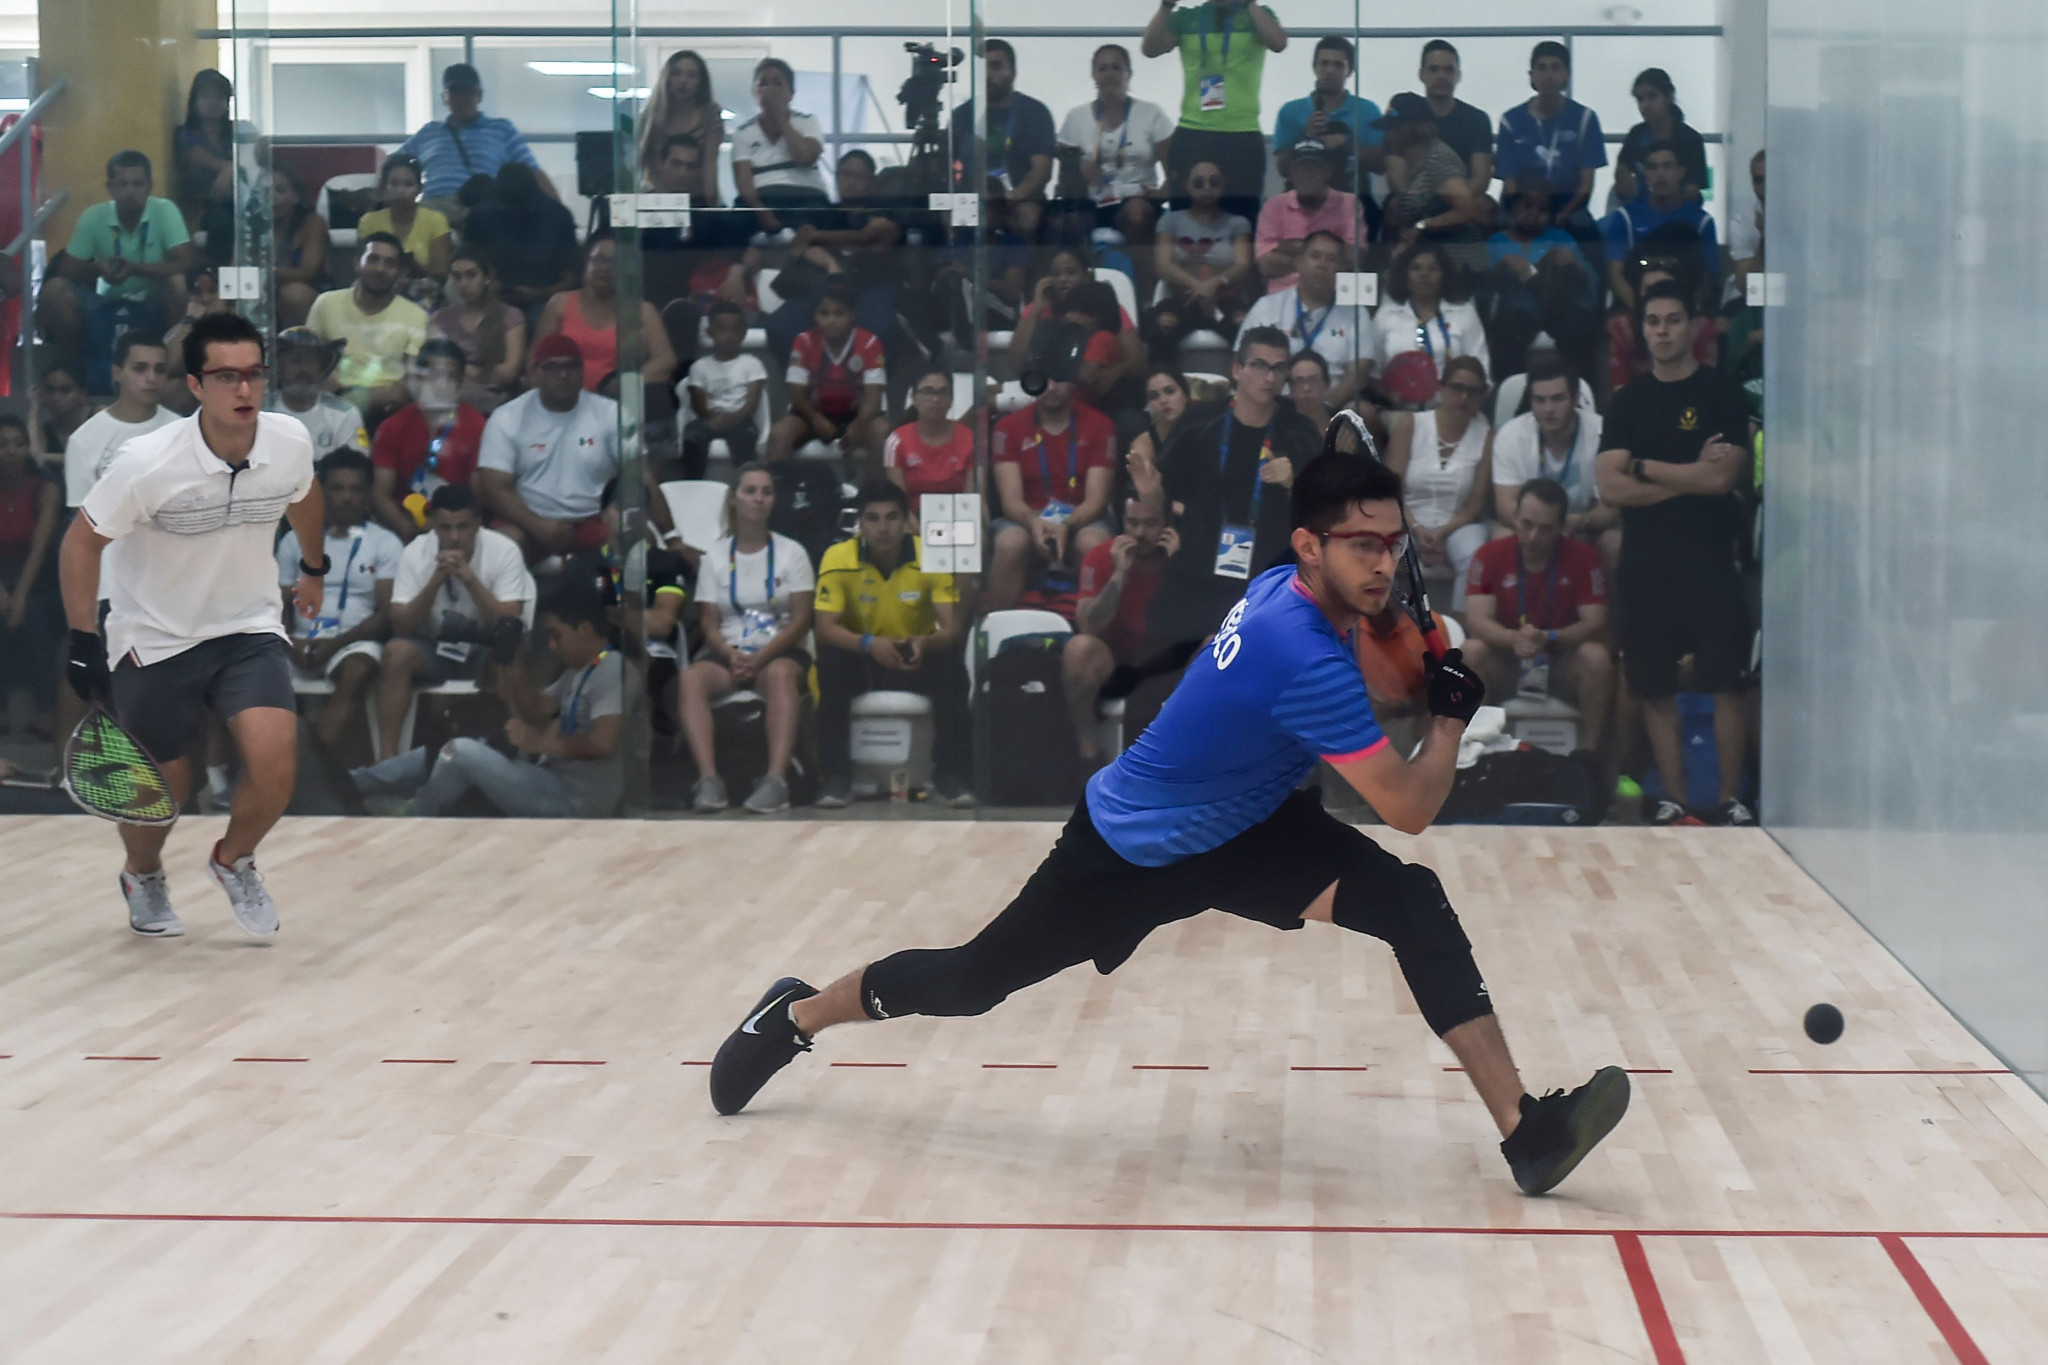 Top seed Horn beaten in Racquetball World Championships semi-final